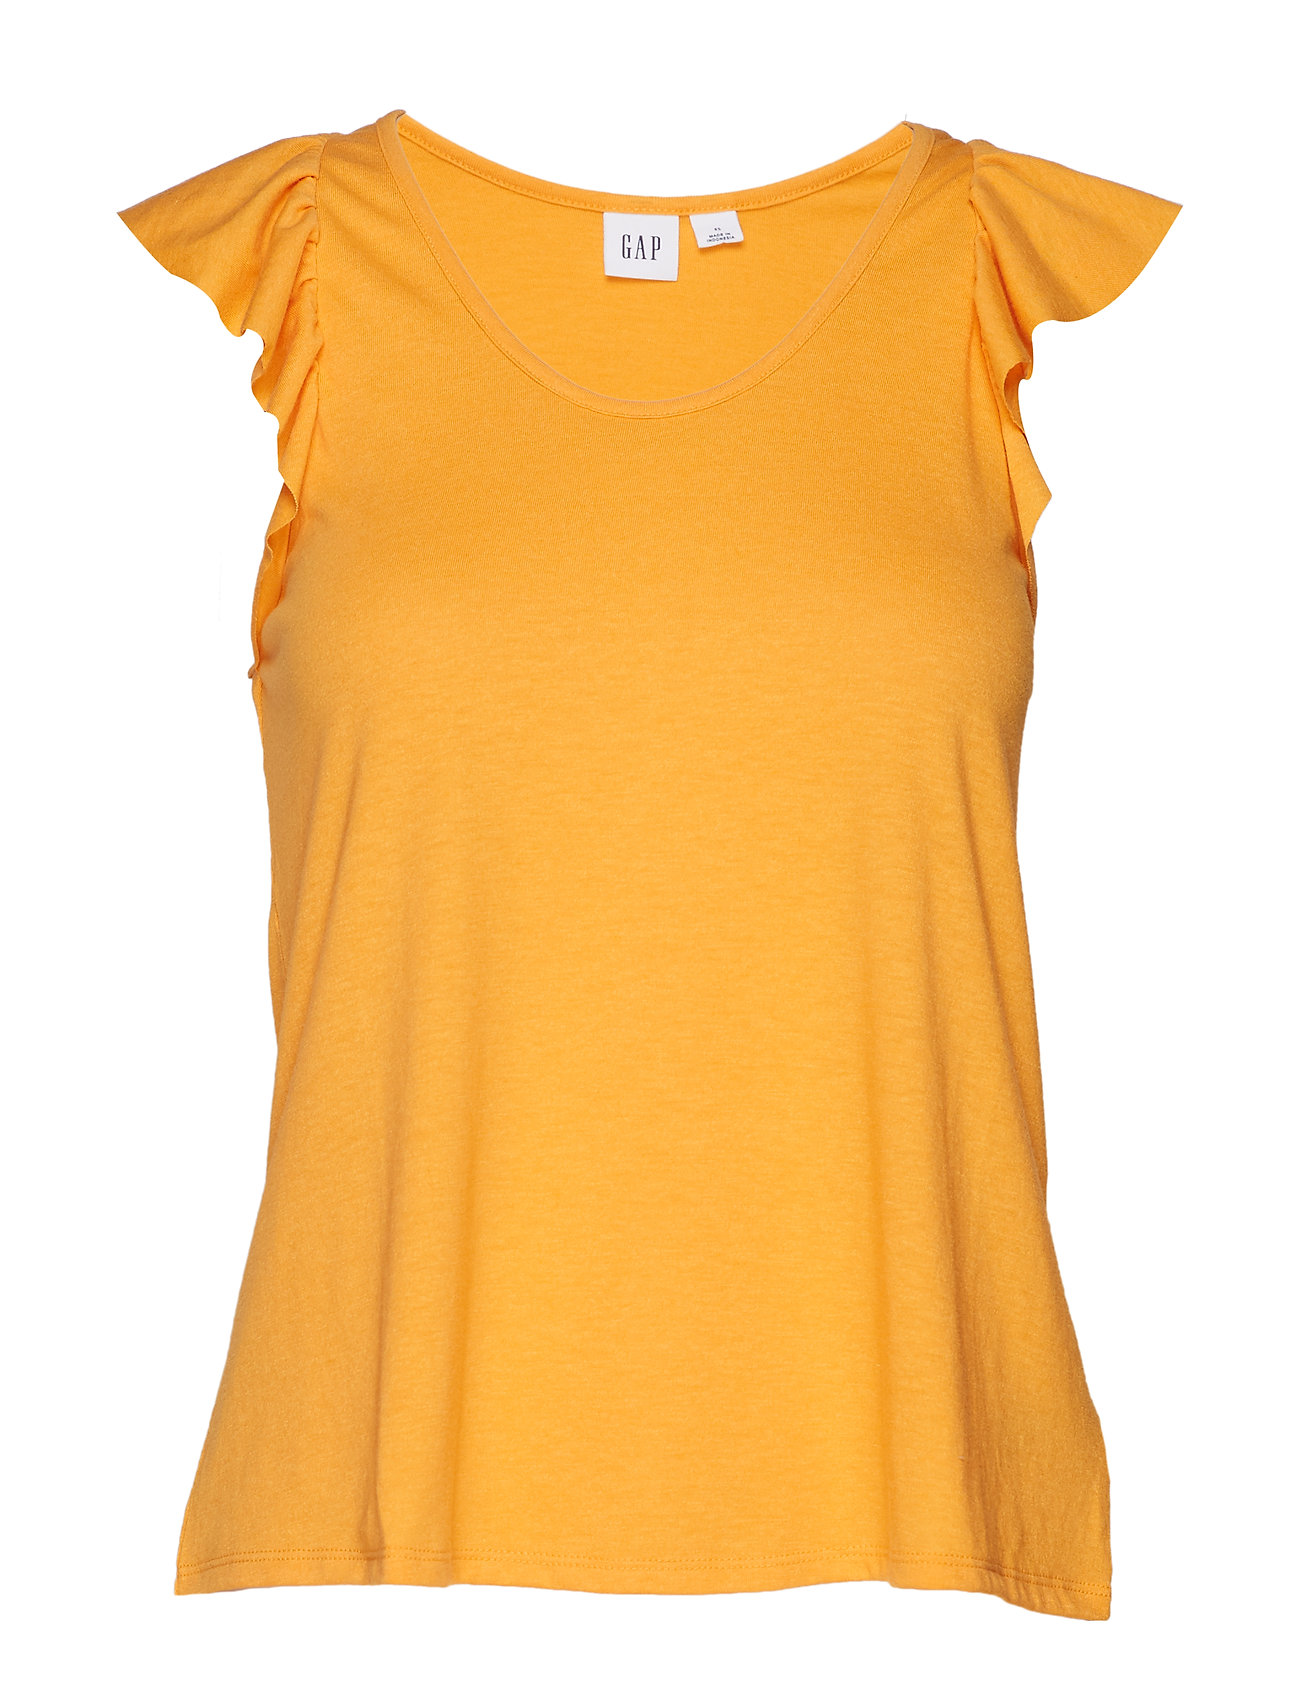 GAP Flutter Tank Top - KAYAK